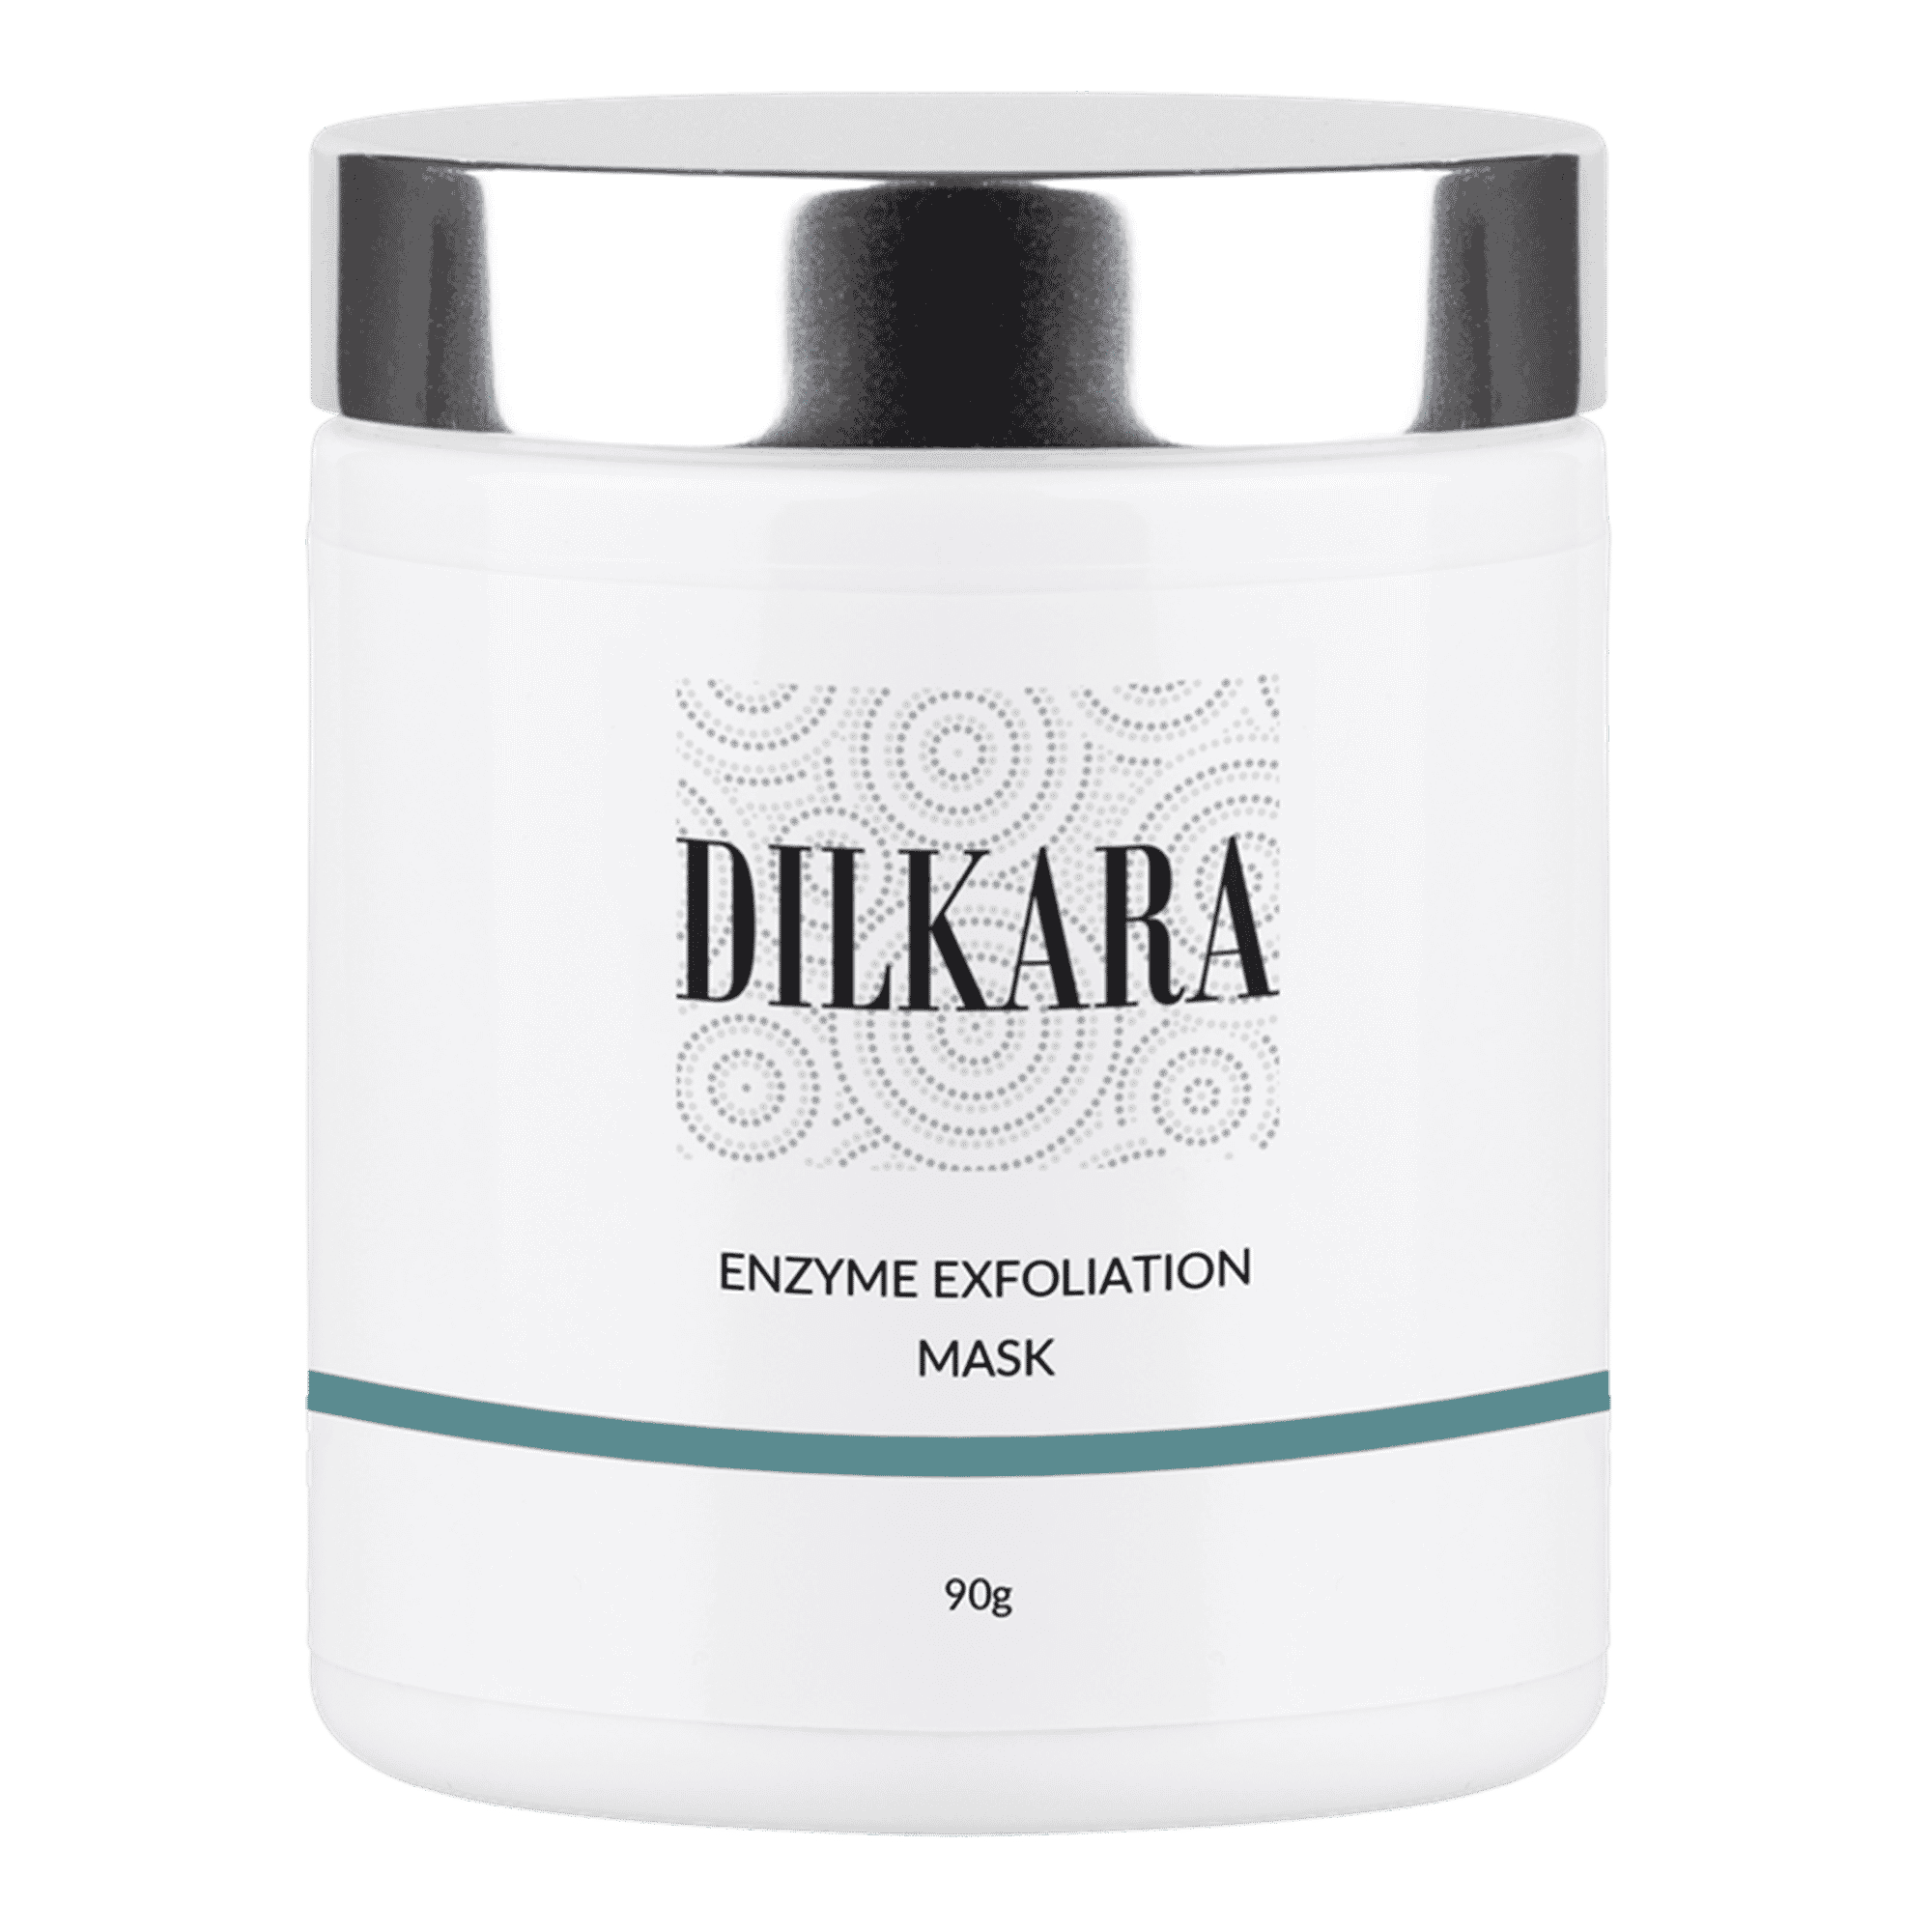 Enzyme Exfoliation Mask